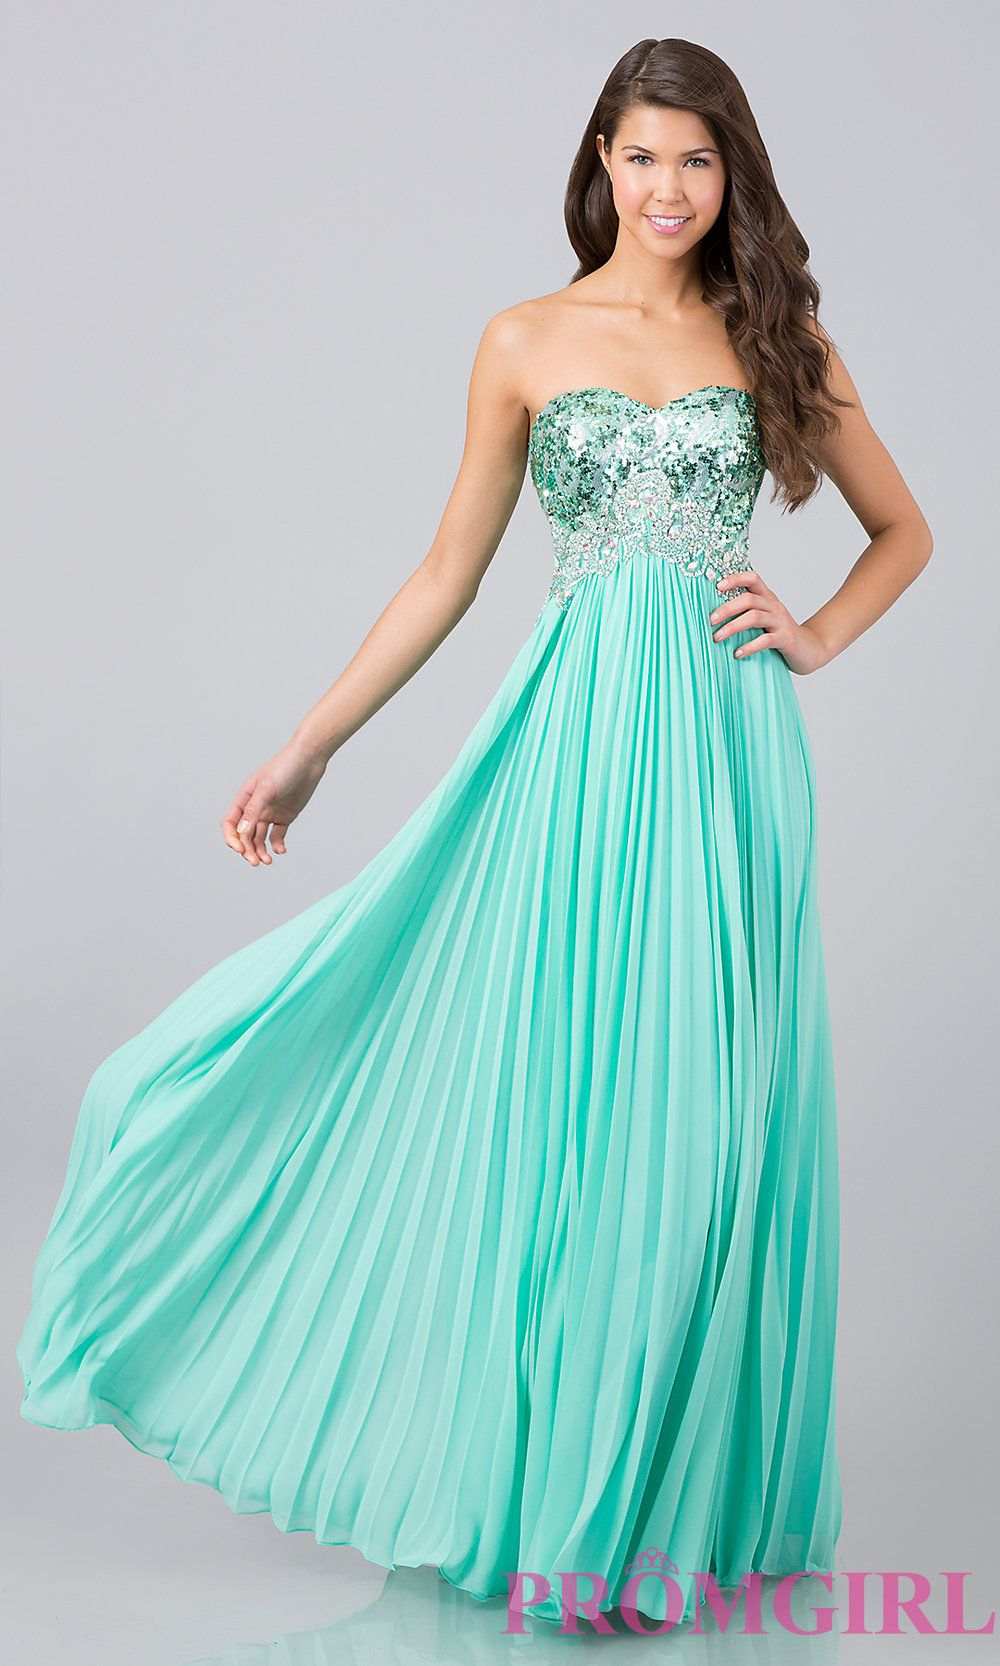 Long Prom Dress Style: DQ-8643 Front Image   prom   Pinterest   Prom ...